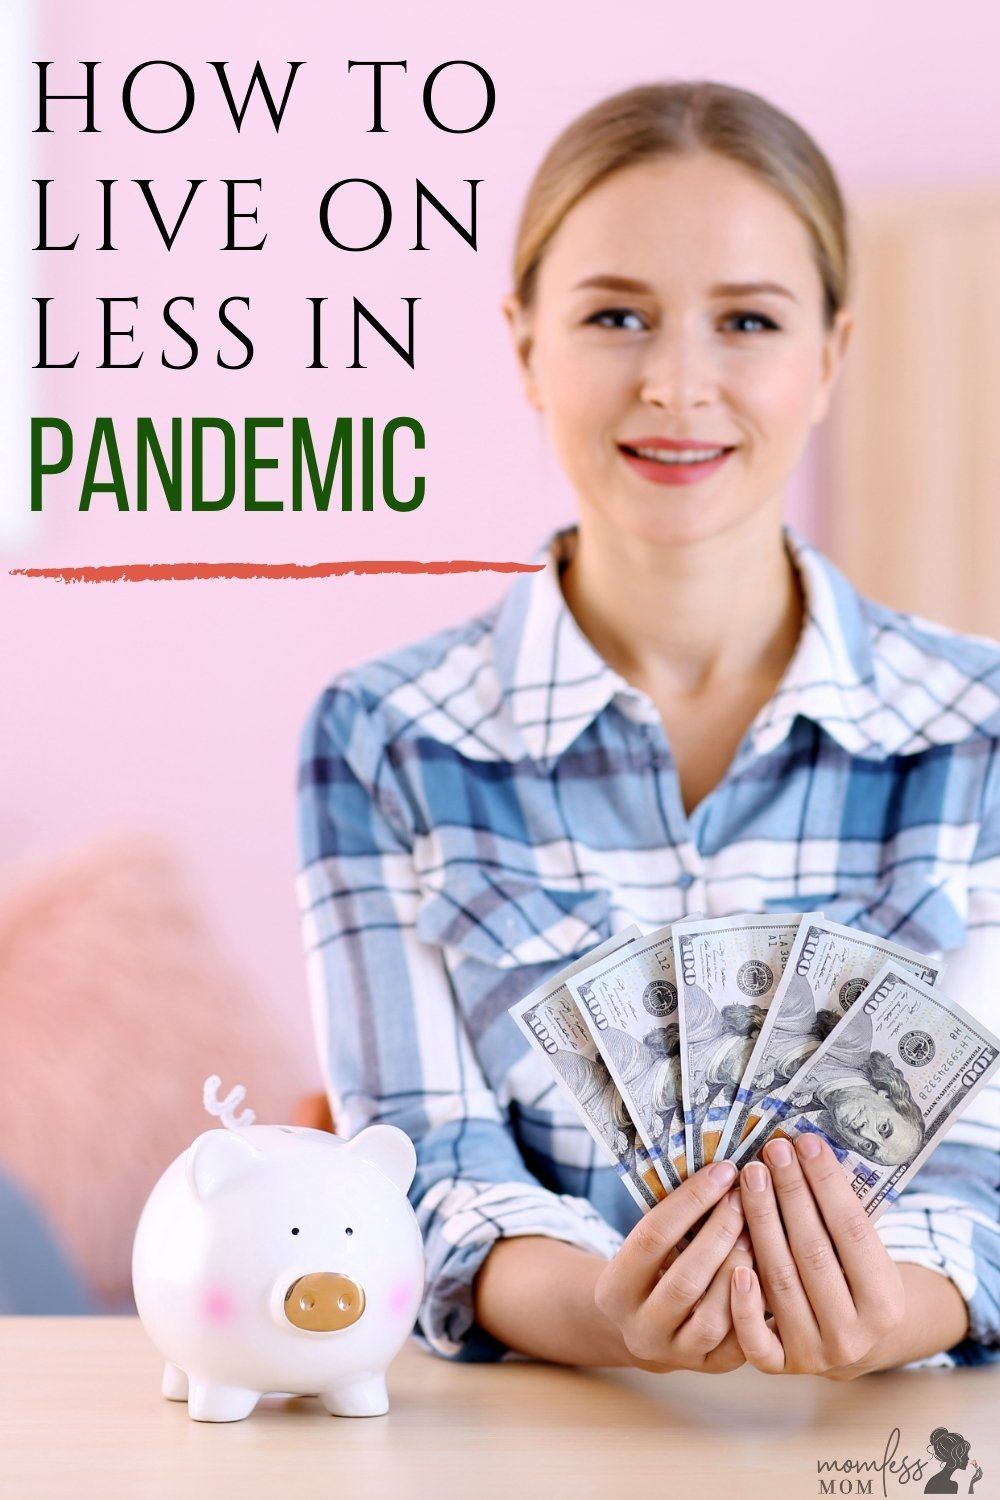 How to Live Well on Less in Pandemic